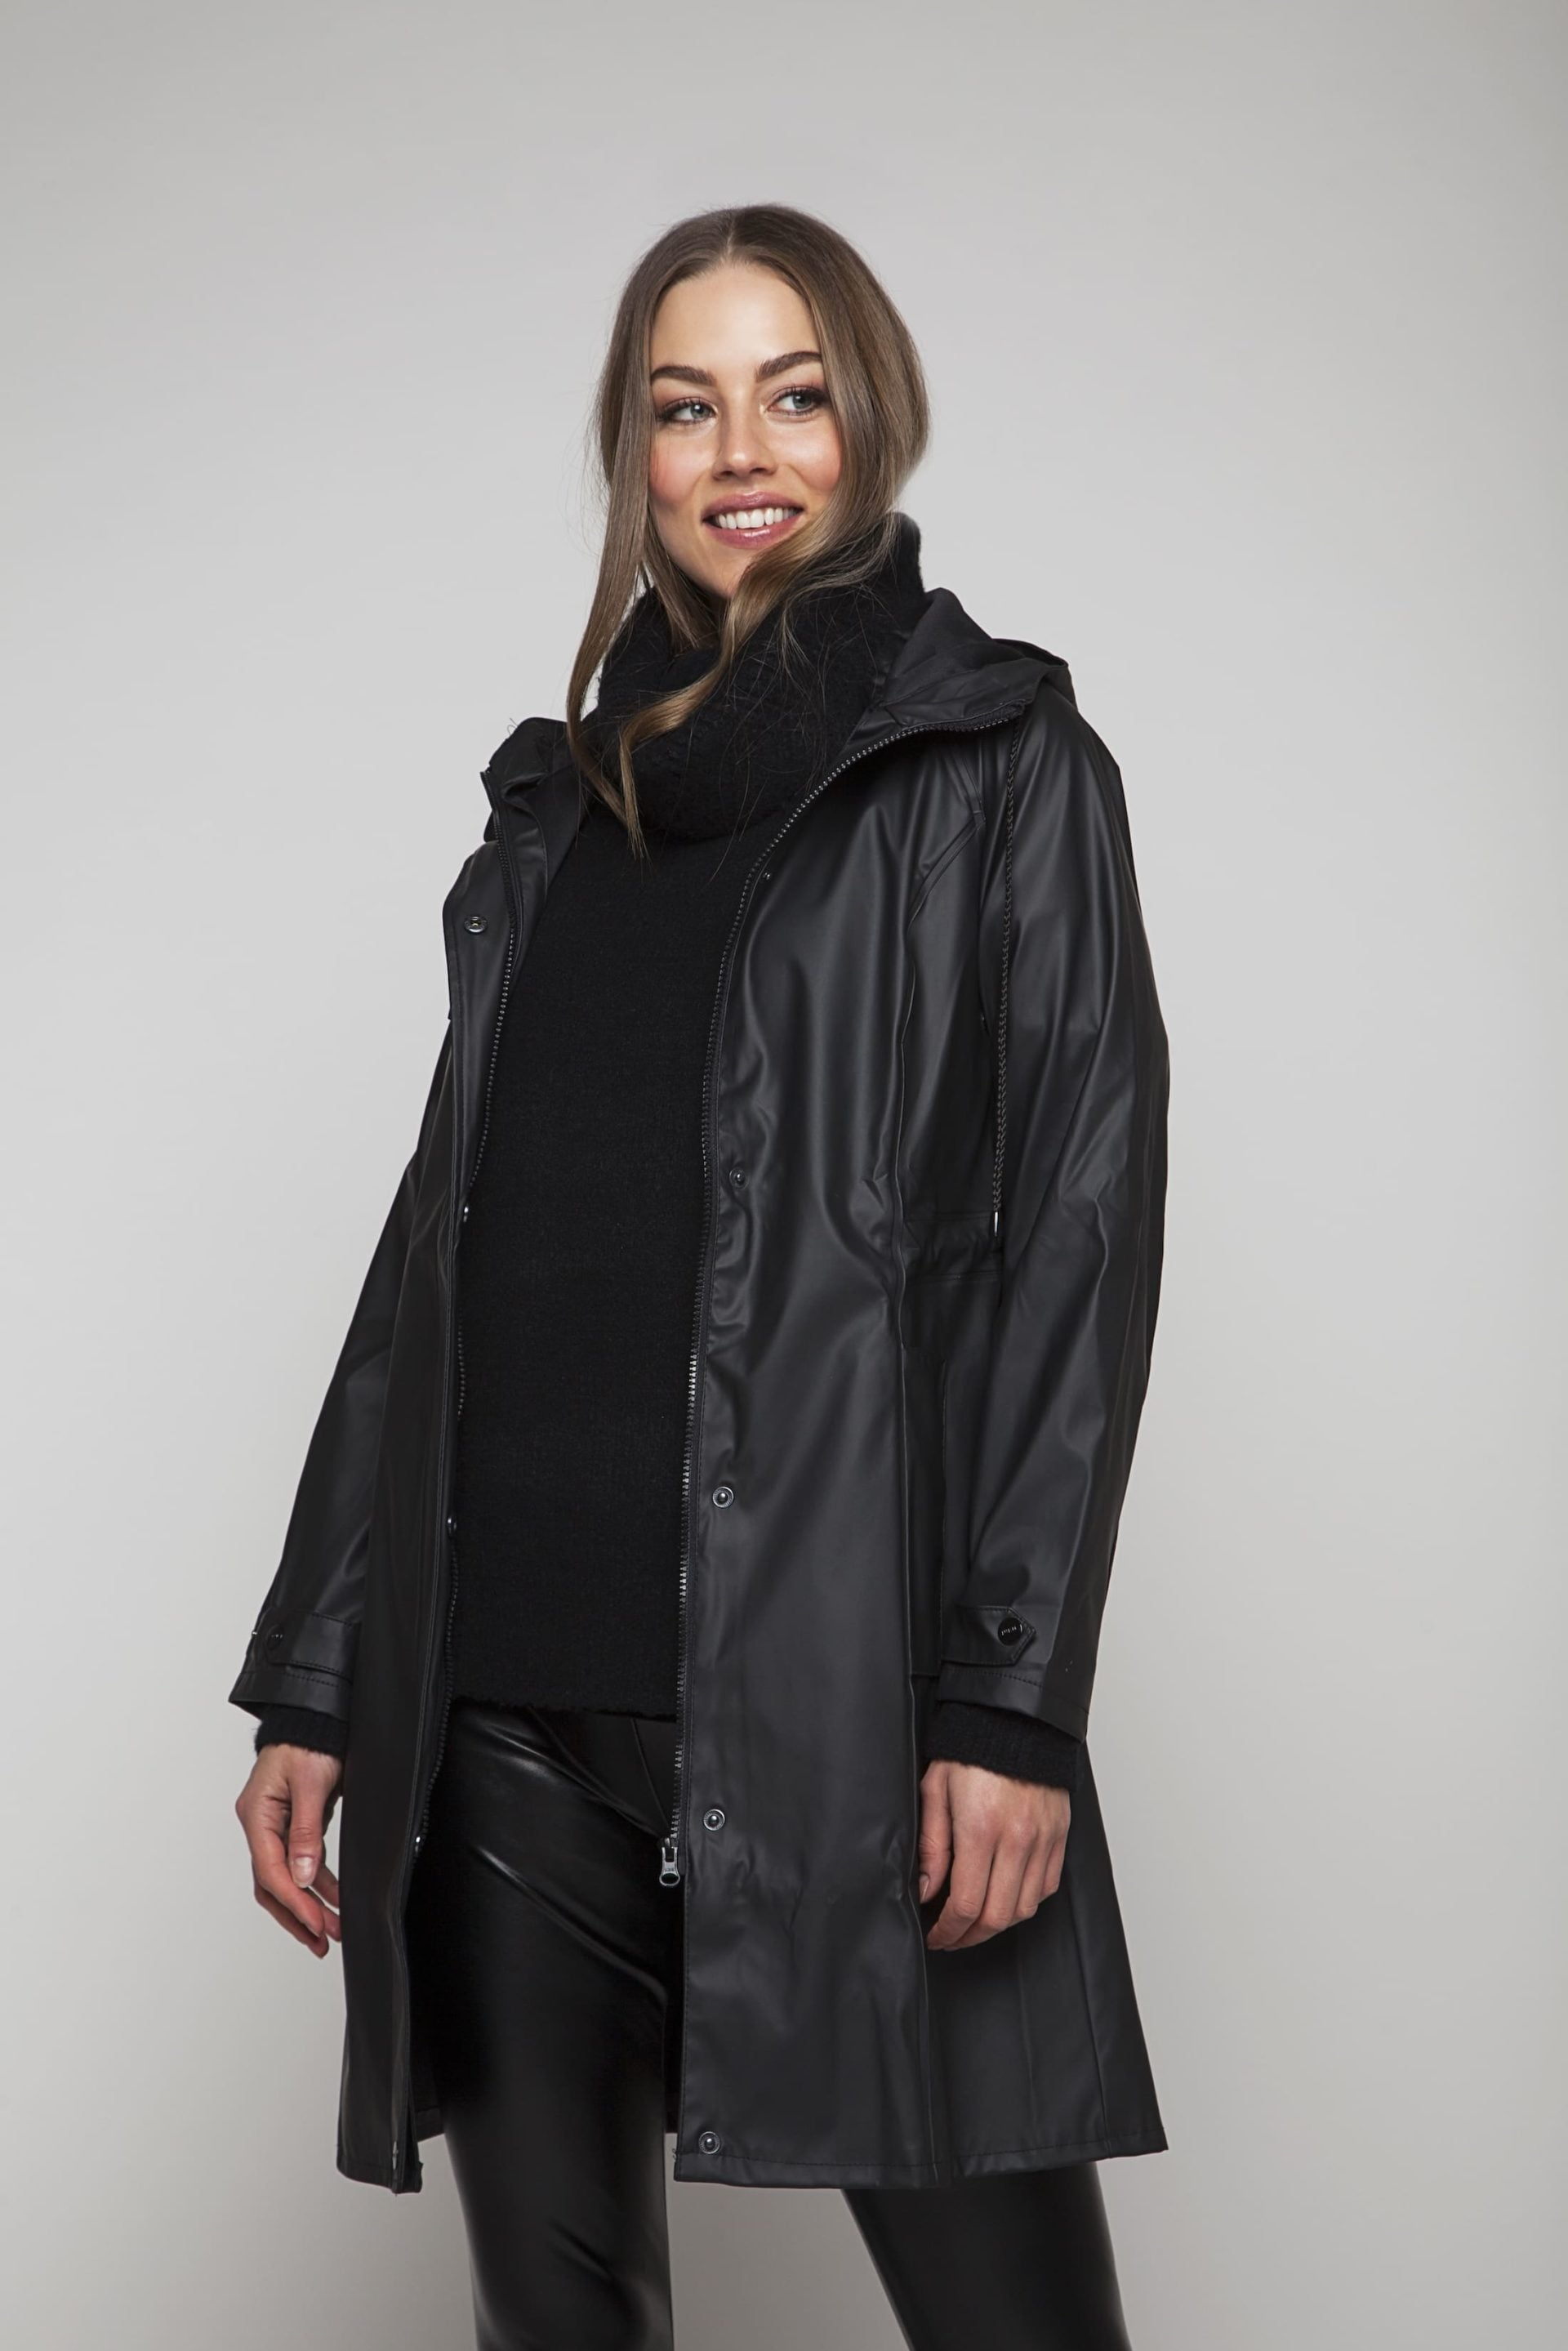 Feminine rainjacket